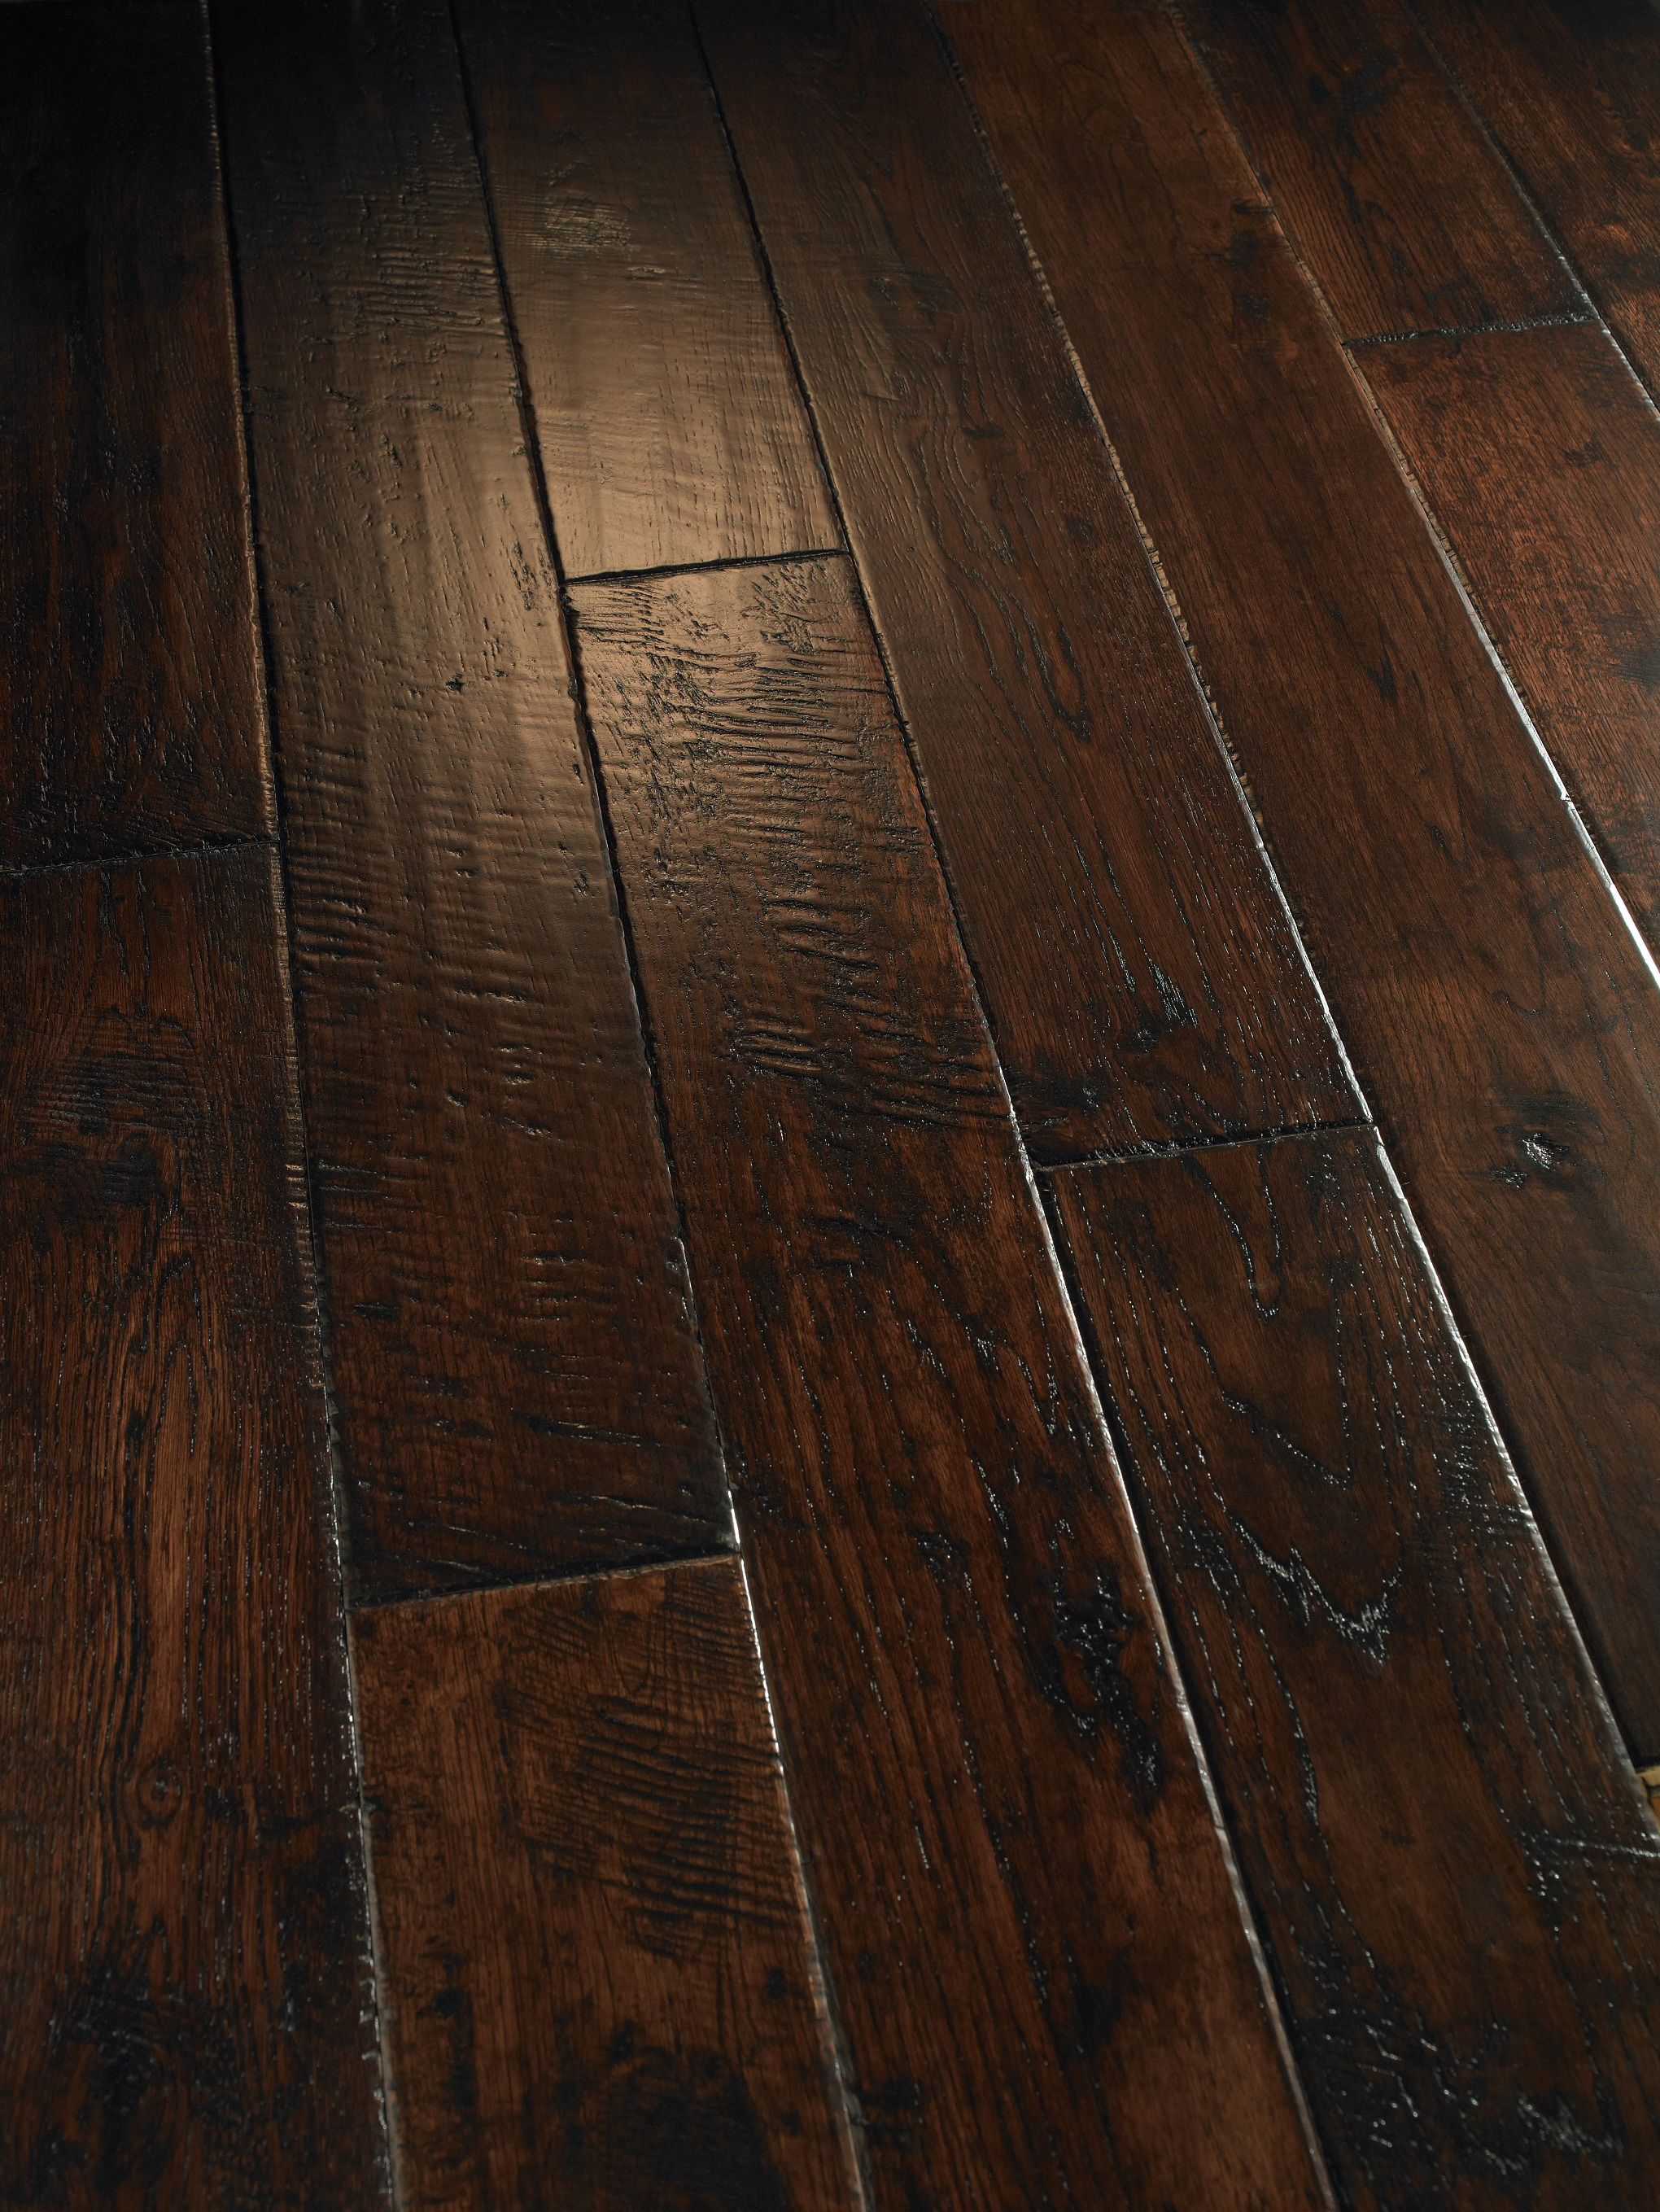 products lifestyle villerbon bella floorzz engineered flooring floors cera cellettes chambord collections collection hardwood